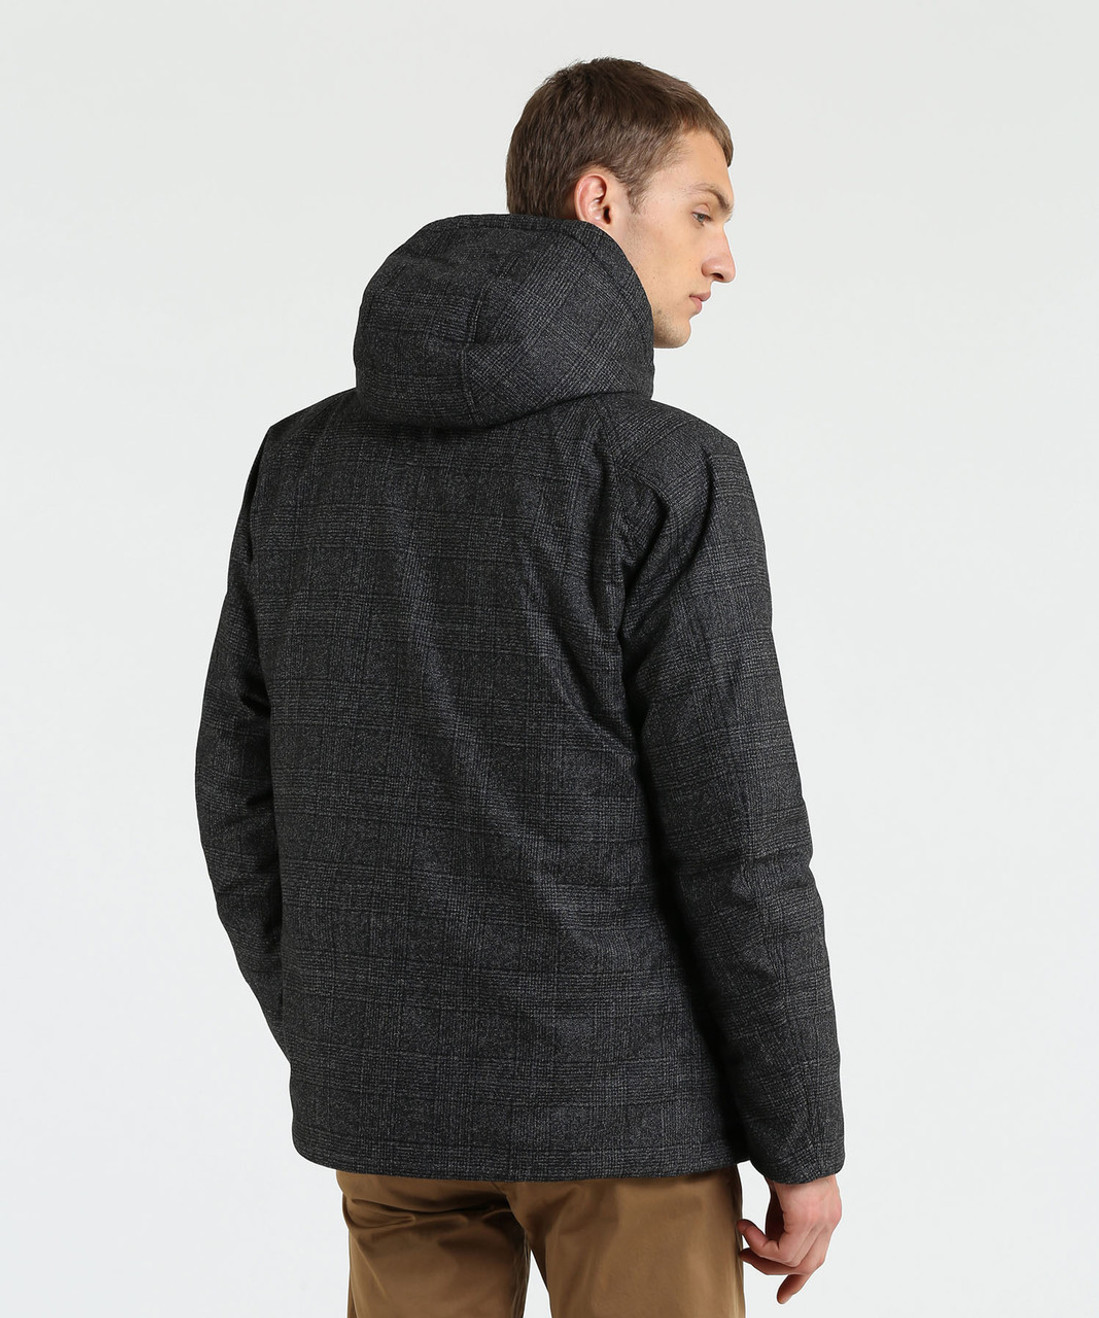 Men's Loro Piana Mountain Down Jacket - John Rich & Bros.